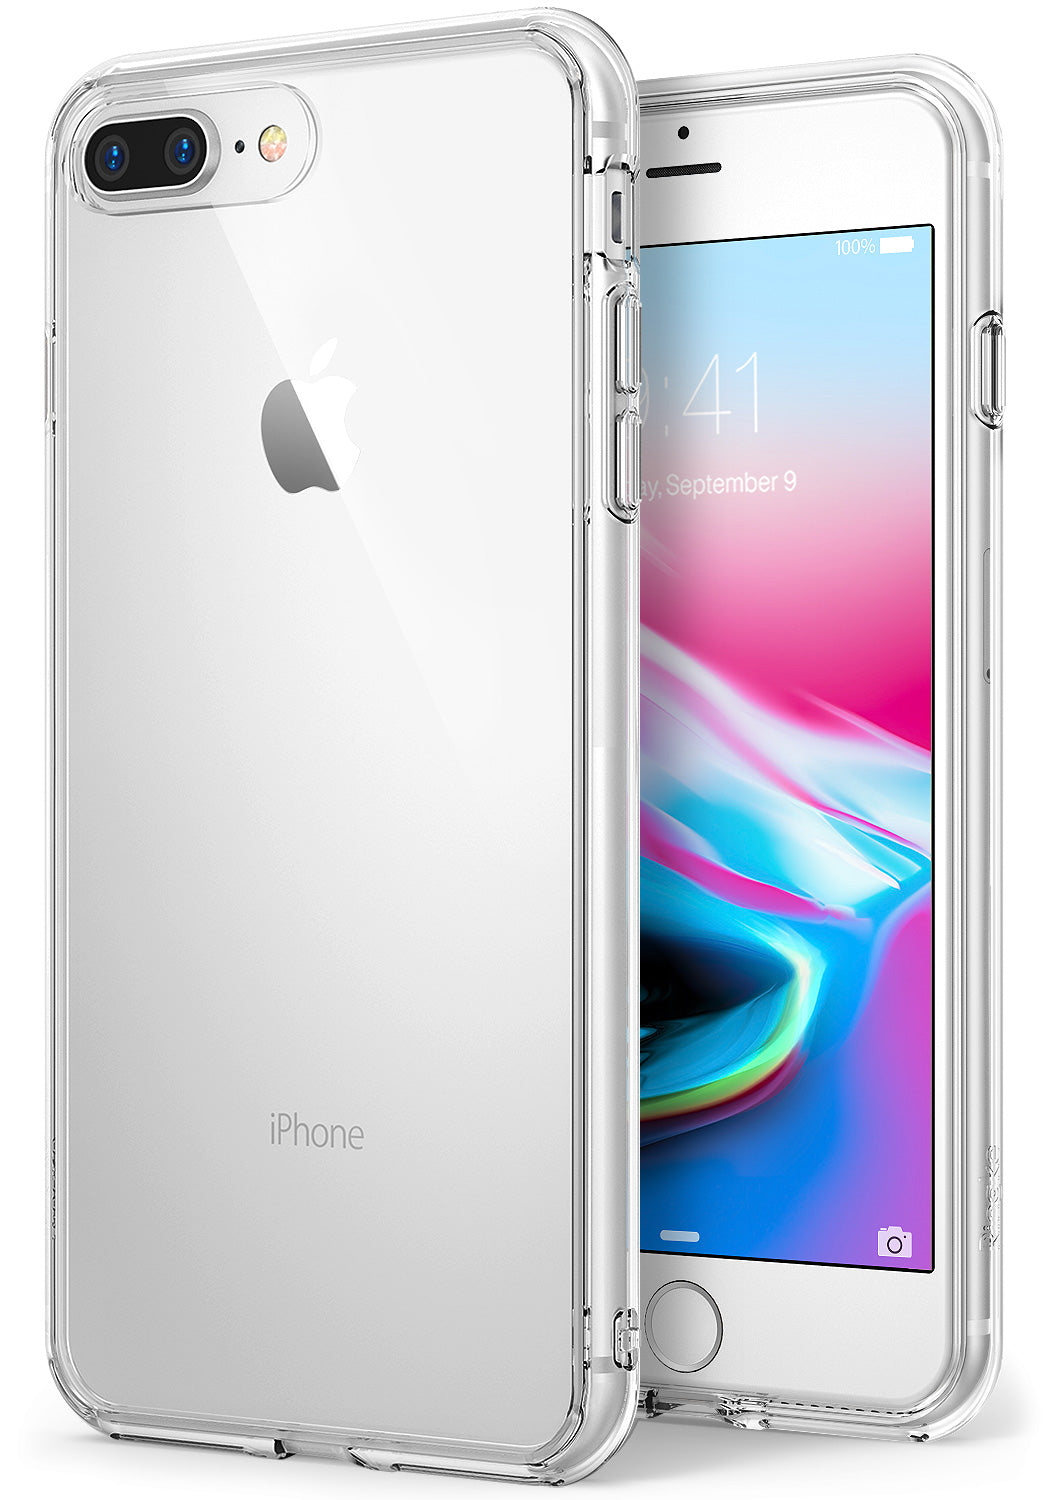 ringke fusion clear transparent case cover for iphone 7 plus 8 plus main clear